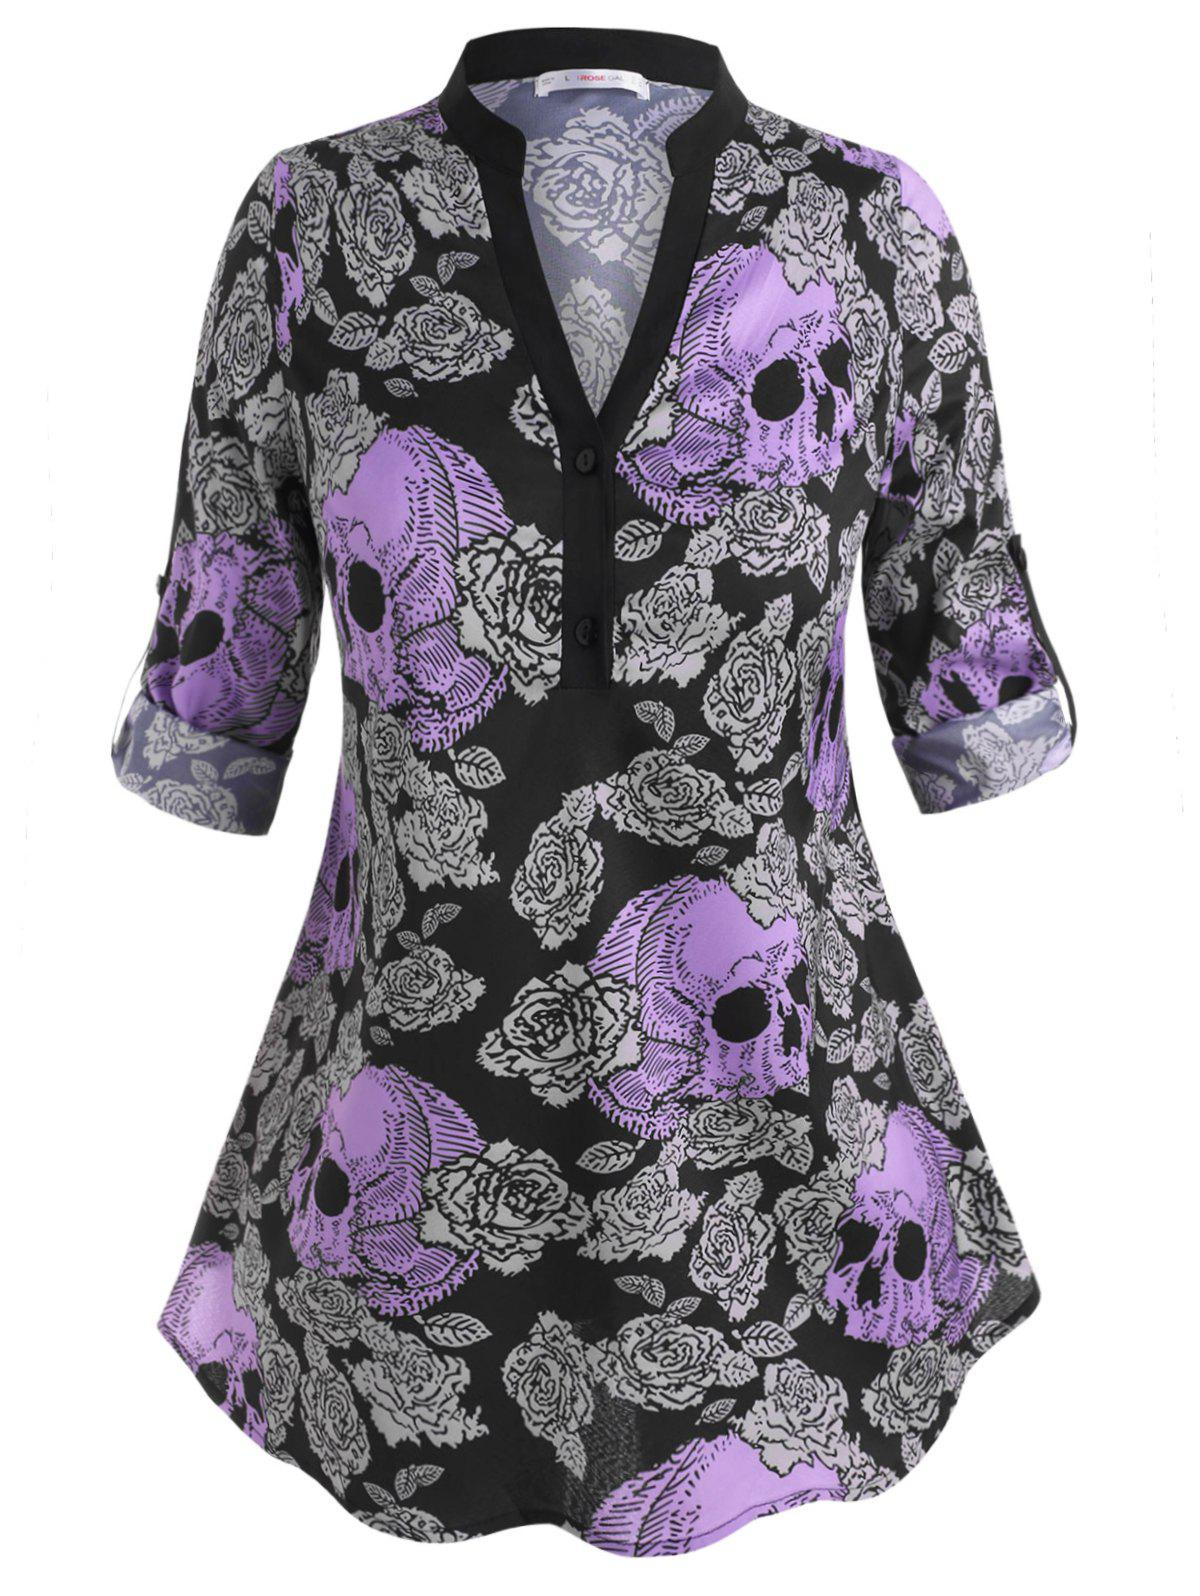 Fashion Skull Floral Tab Sleeve Halloween Plus Size Blouse